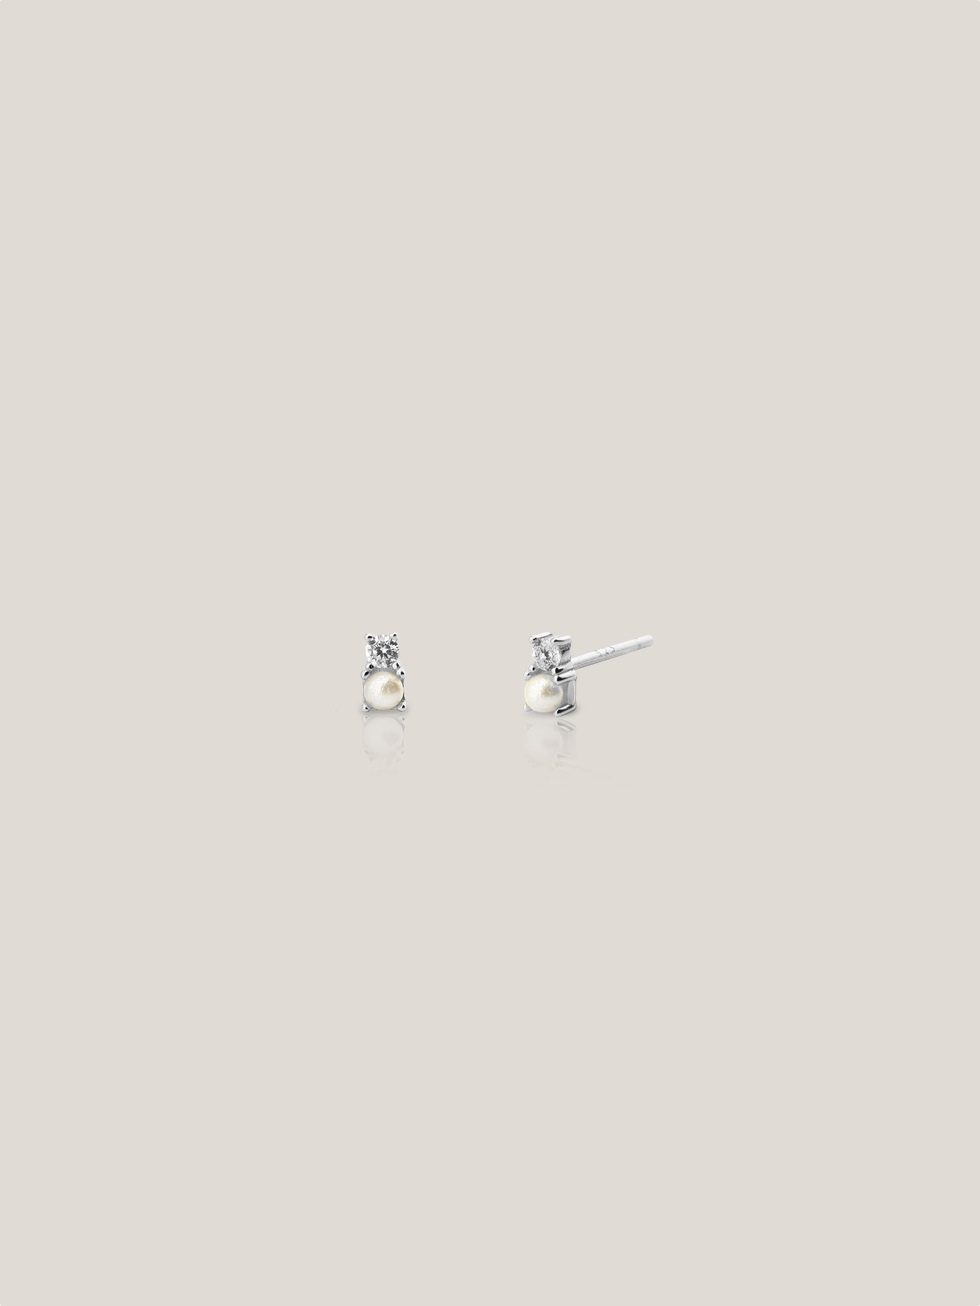 PERLITA silver earrings